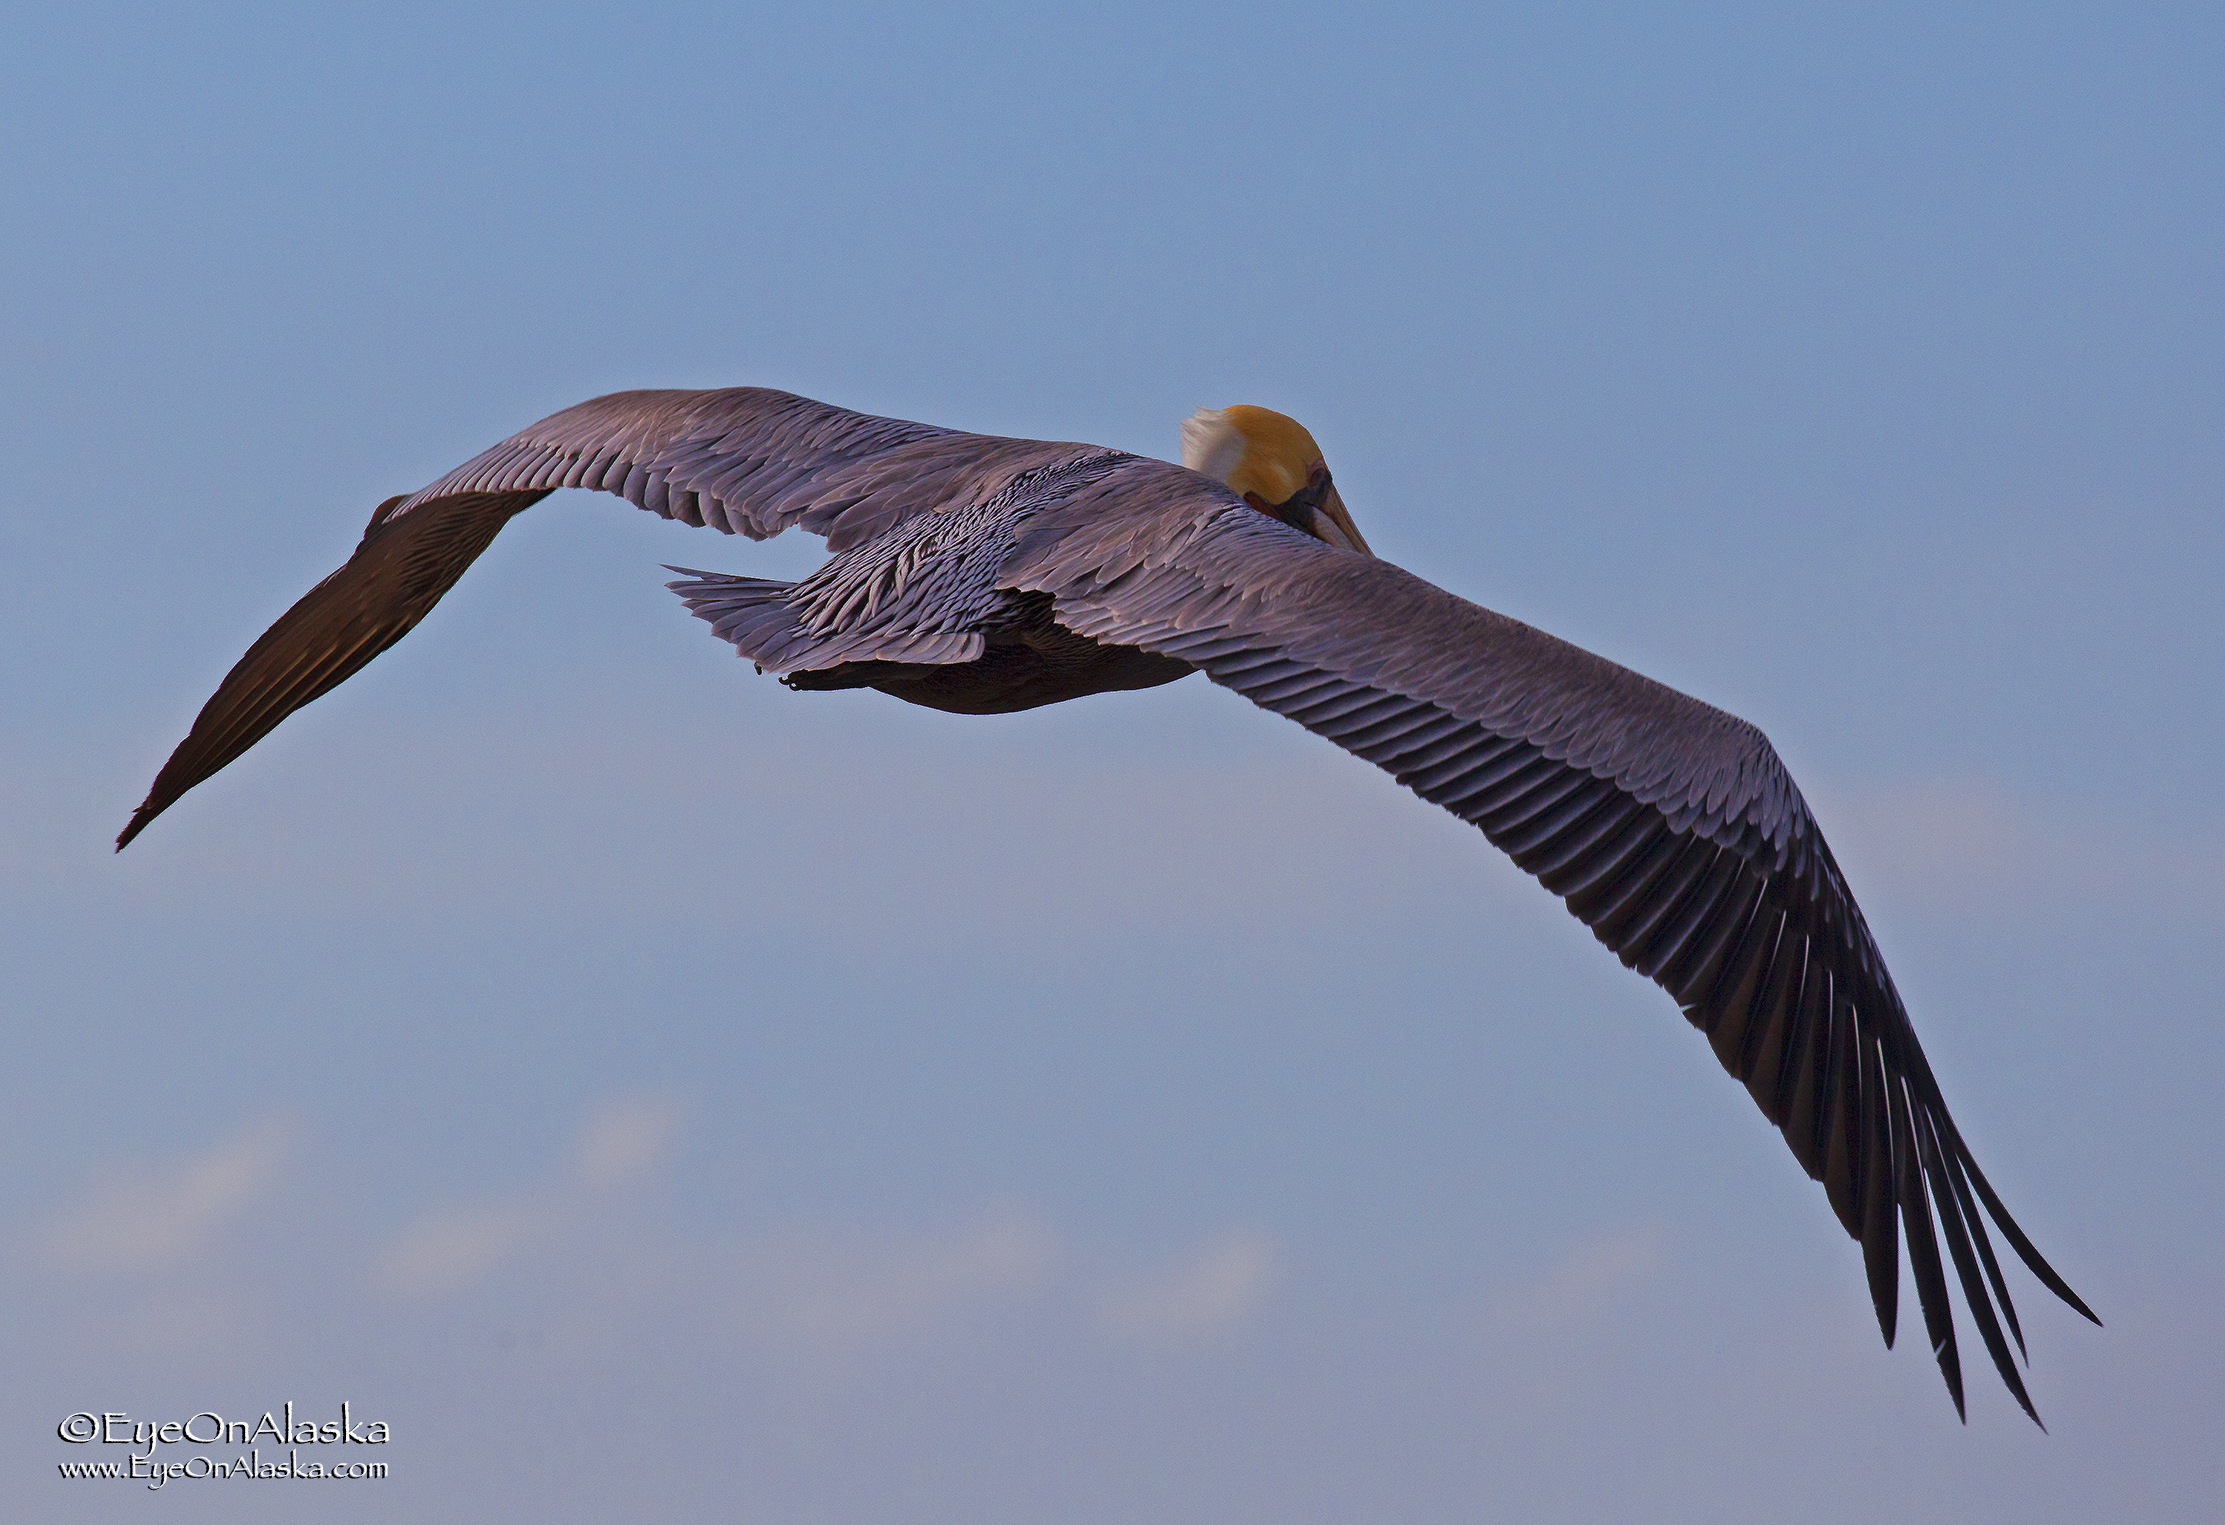 Pelicans soaring the cliff face. I never realized they were as colorful as they are.